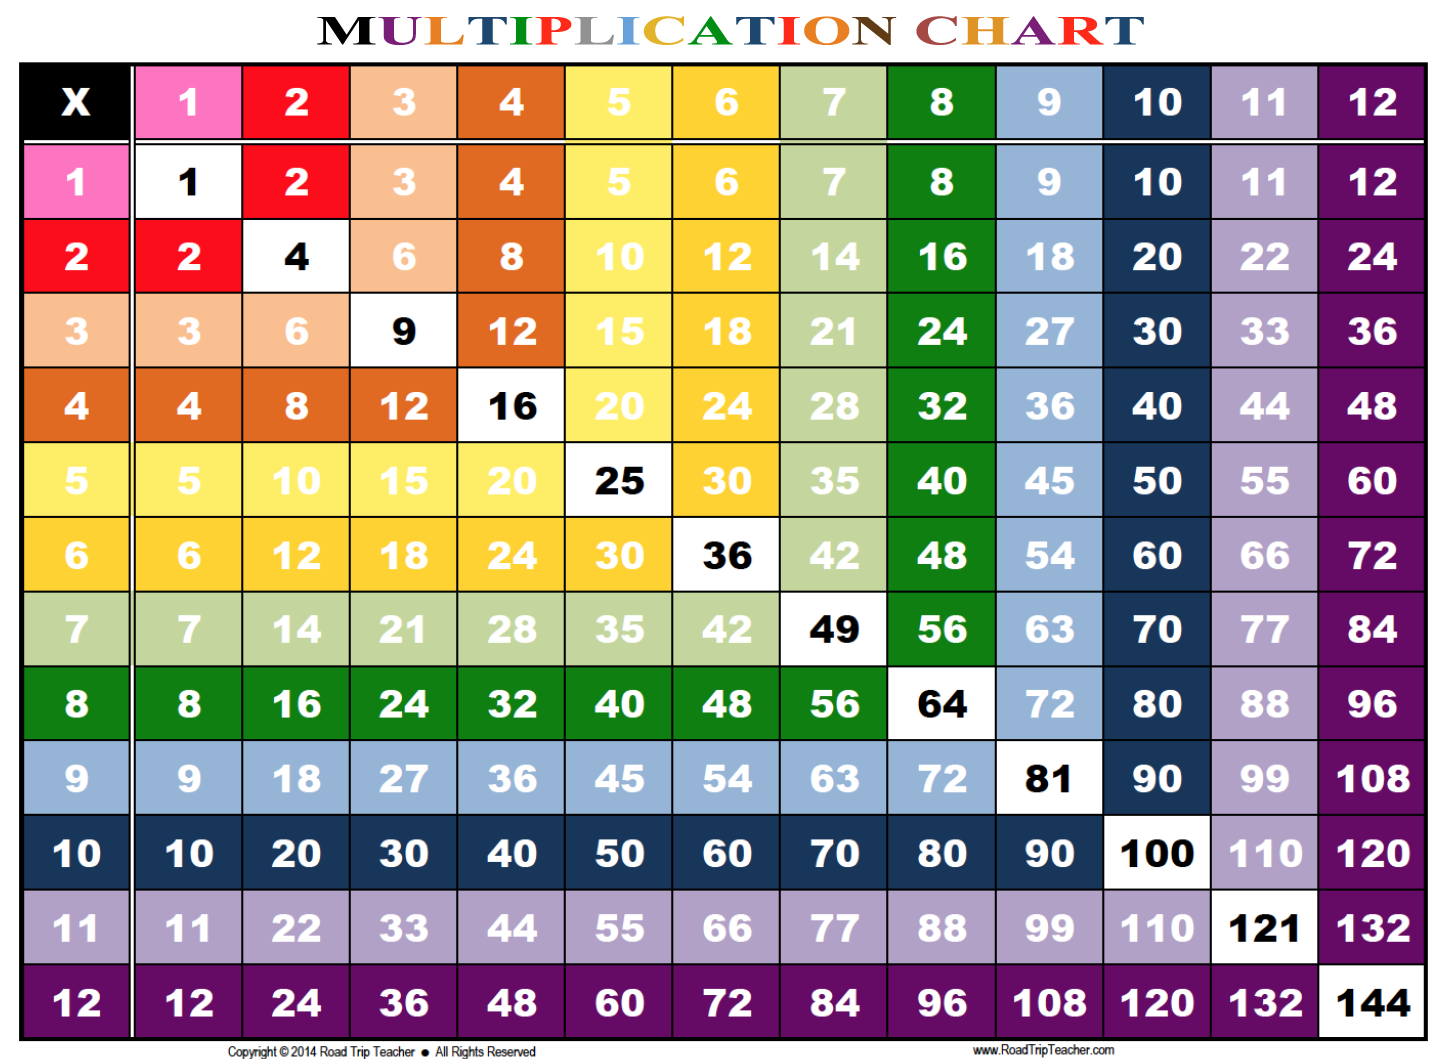 Multiplication Chart 1 12 Printable With Images